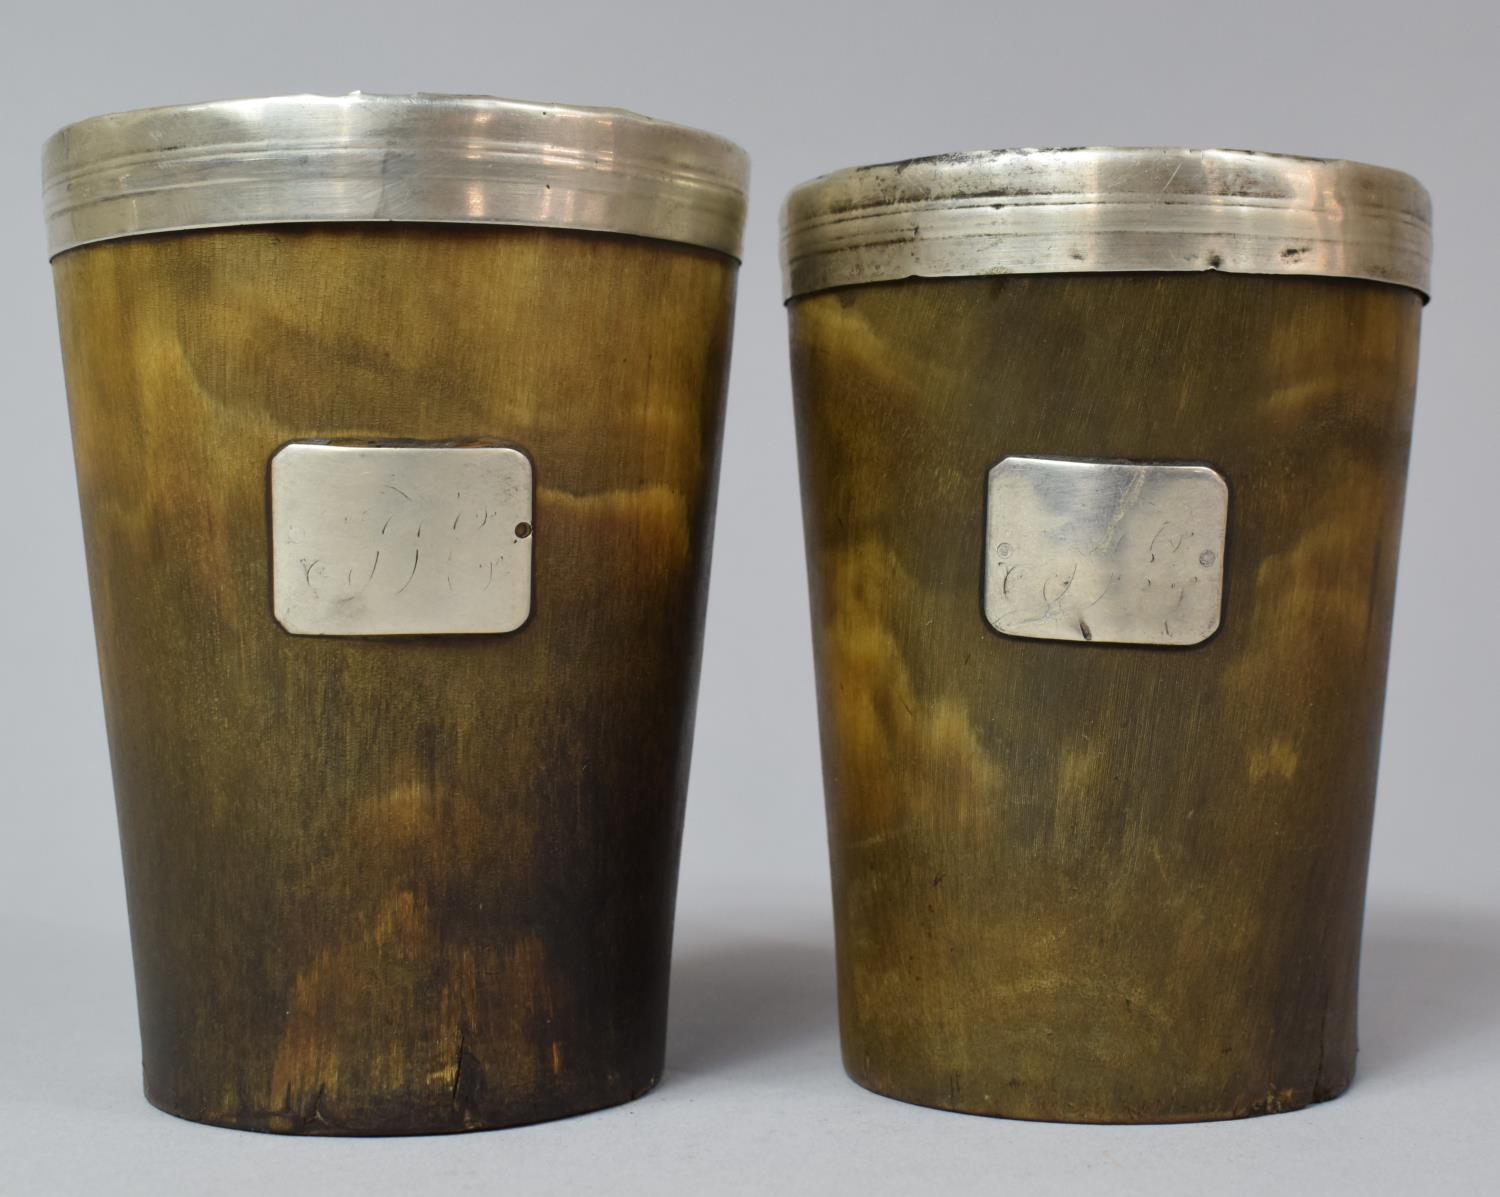 A Pair of 19th Century Silver Rimmed Scottish Horn Beakers with Original Tinned Copper Liners and